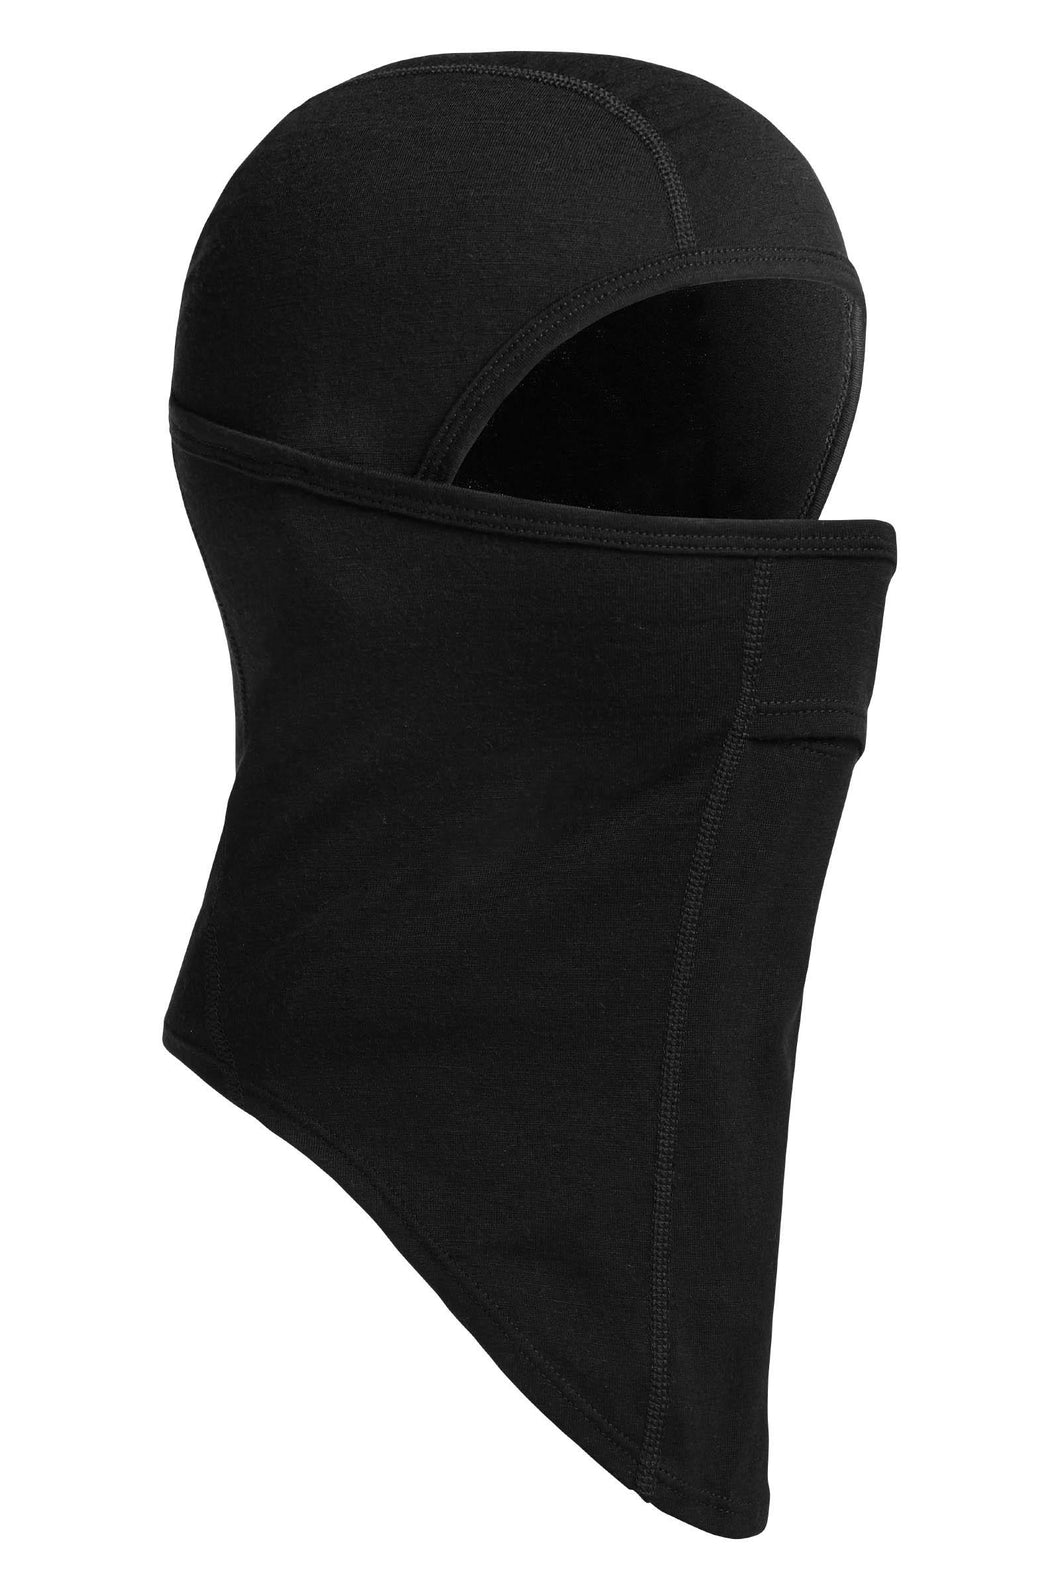 Icebreaker Balaclava UNISEX Merino Wool - Oasis - Outdoor Winter Camping Trekking Hiking Cold Weather Snow Sports